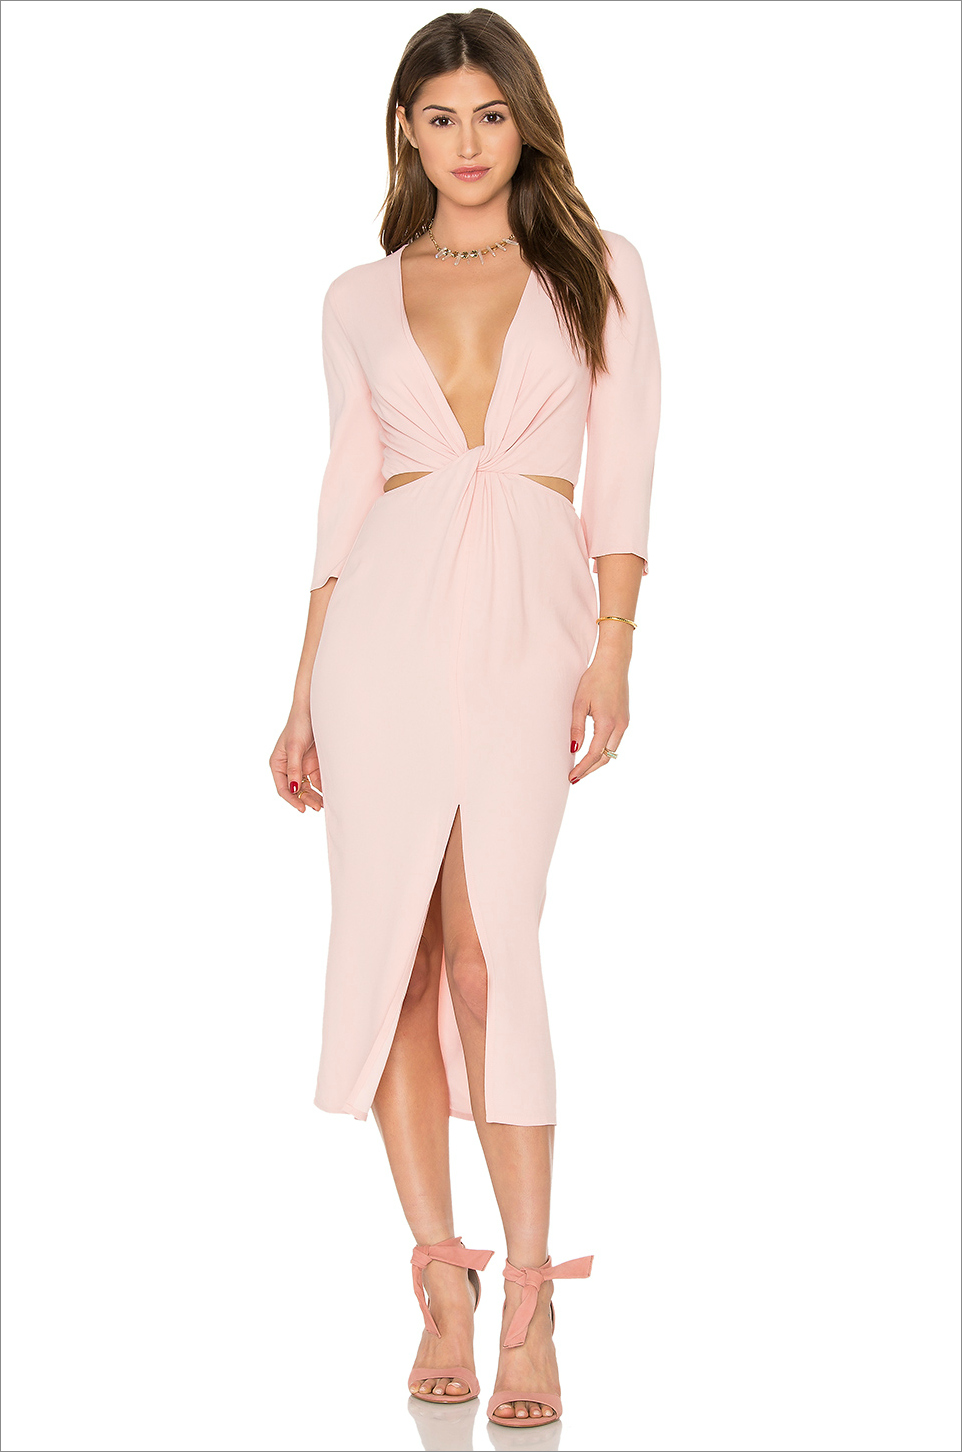 Wedding Ideas 25 Wedding Guest Dresses Youll Love Inside Weddings - Wedding Guest Dresses